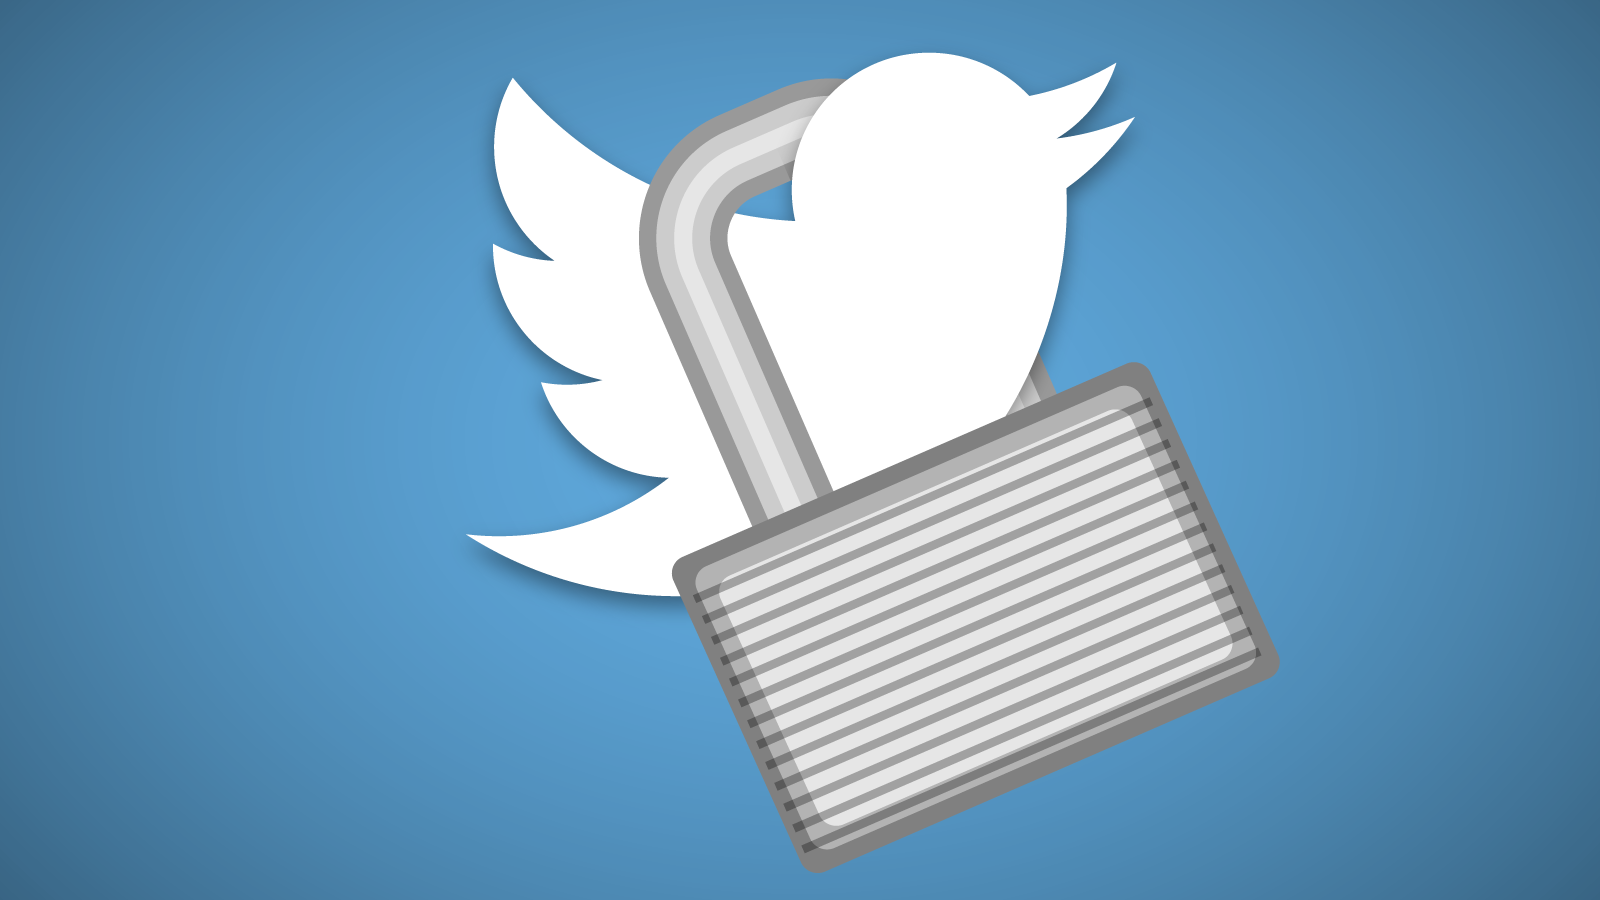 Twitter is working on encrypted conversations